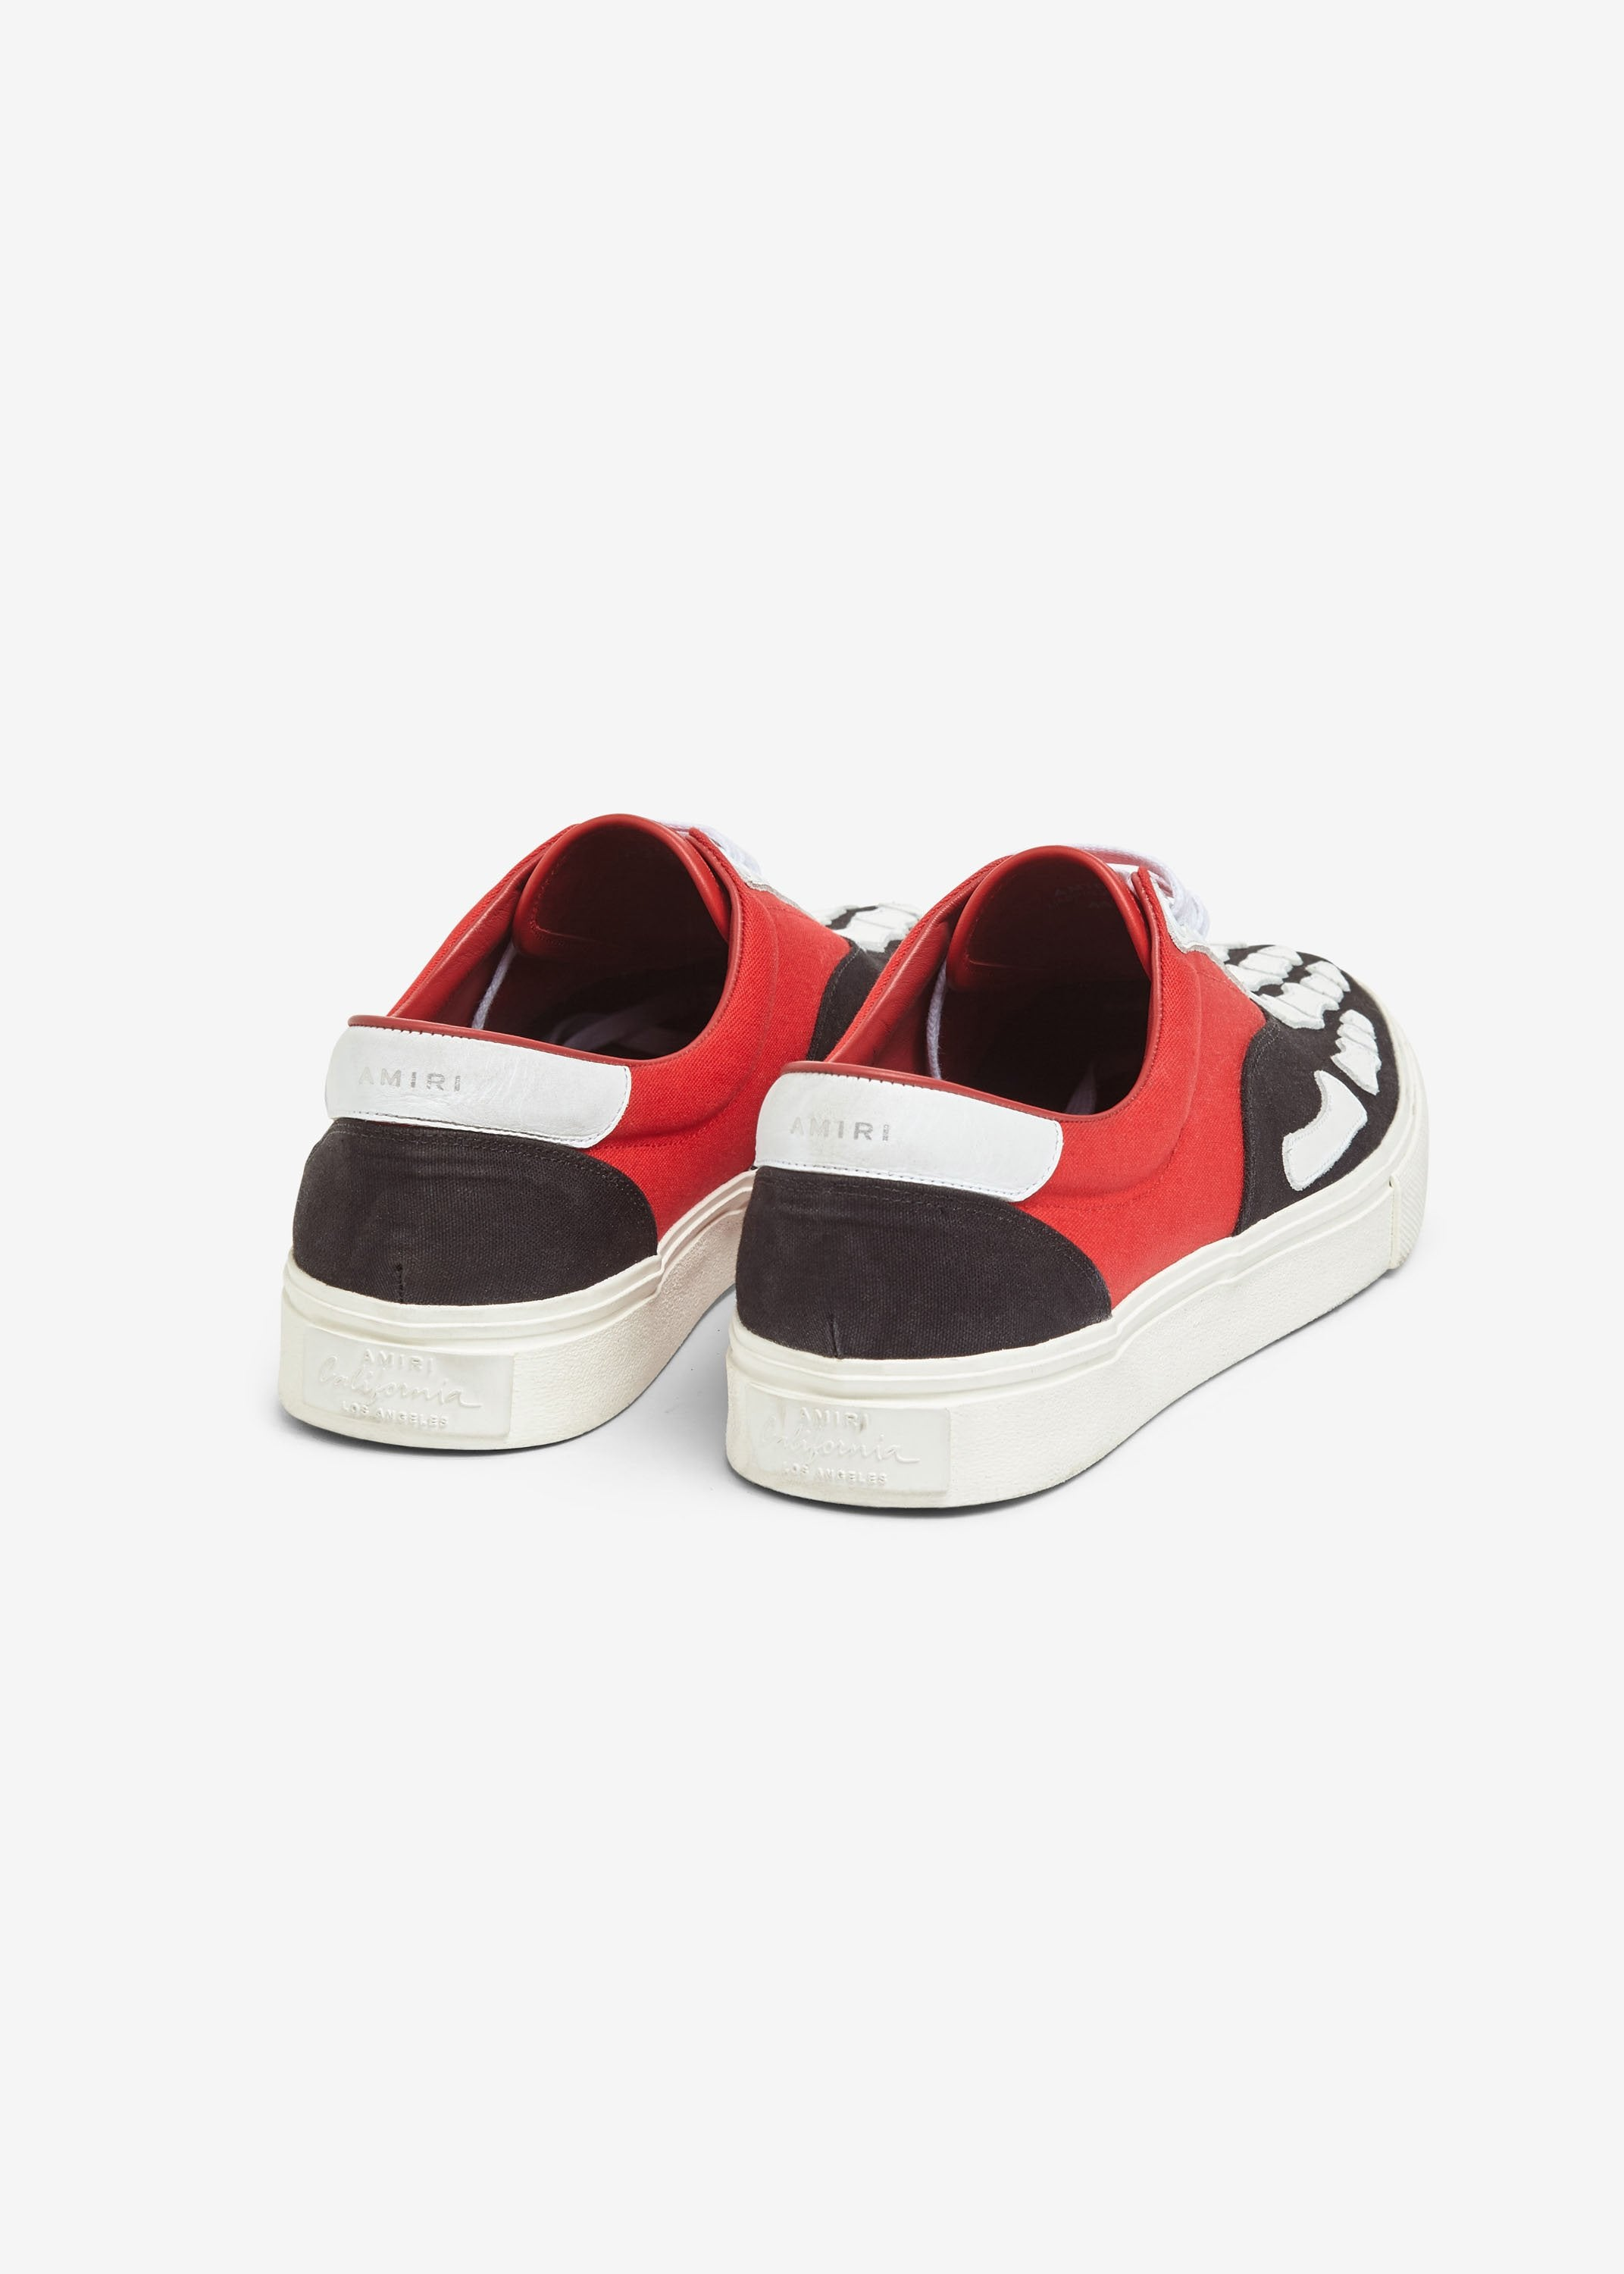 skel-toe-lace-up-black-red-white-image-3